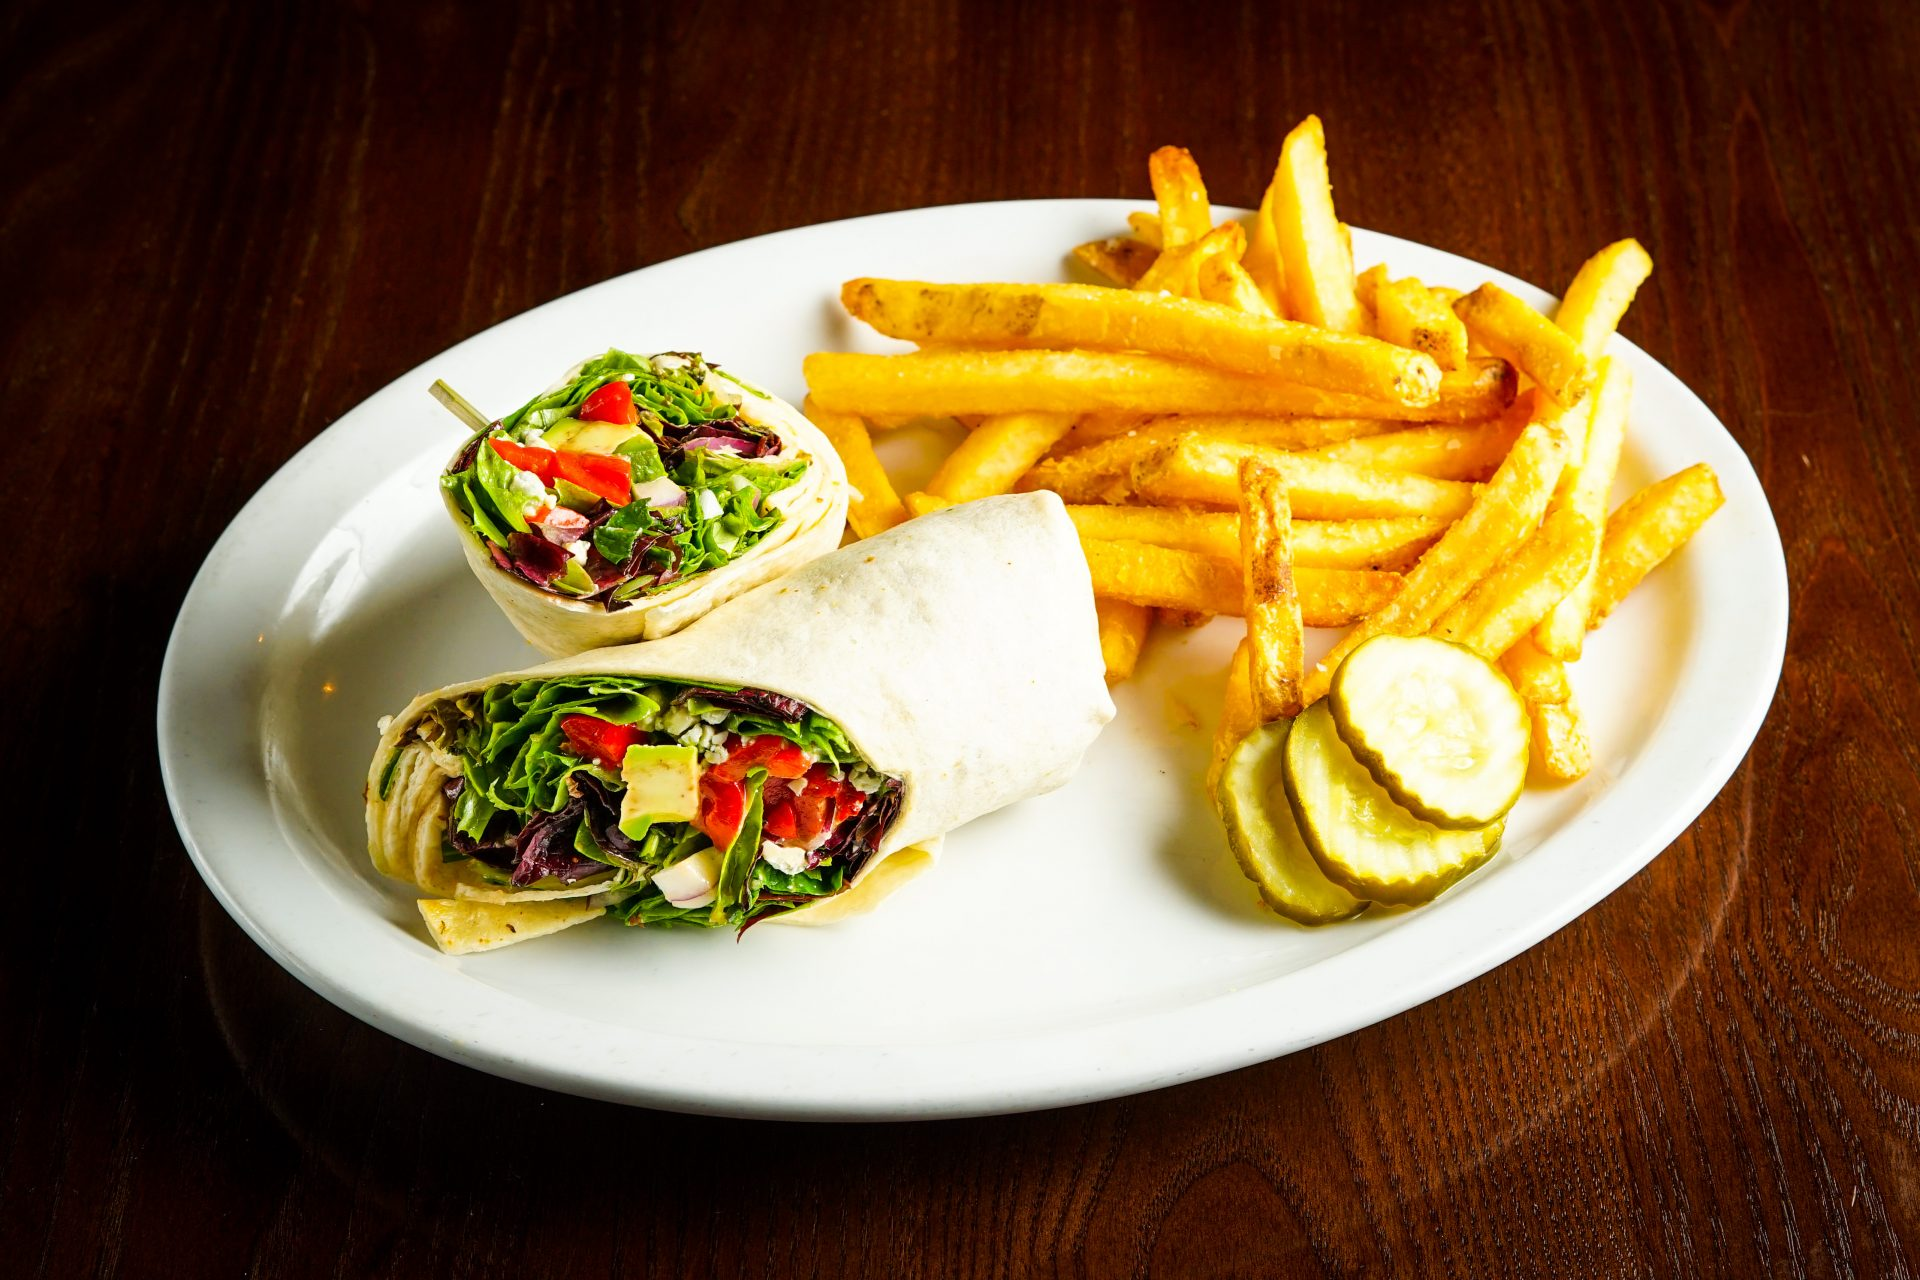 Image of California Wrap - Avocado, Red Onion, Roasted Red Pepper, Bleu Cheese, Mixed Greens dressed with Champagne Vinaigrette, Flour Tortilla